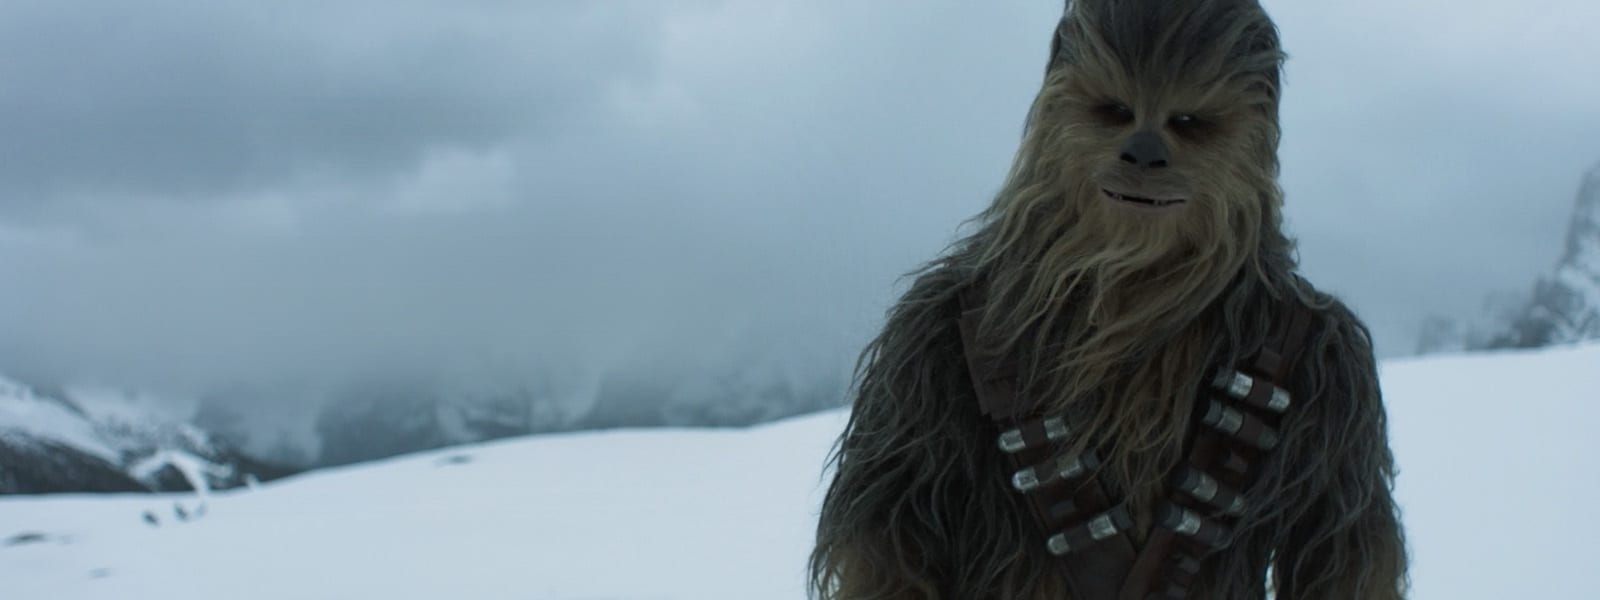 Solo: A Star Wars Story | Chewbacca Character Profile